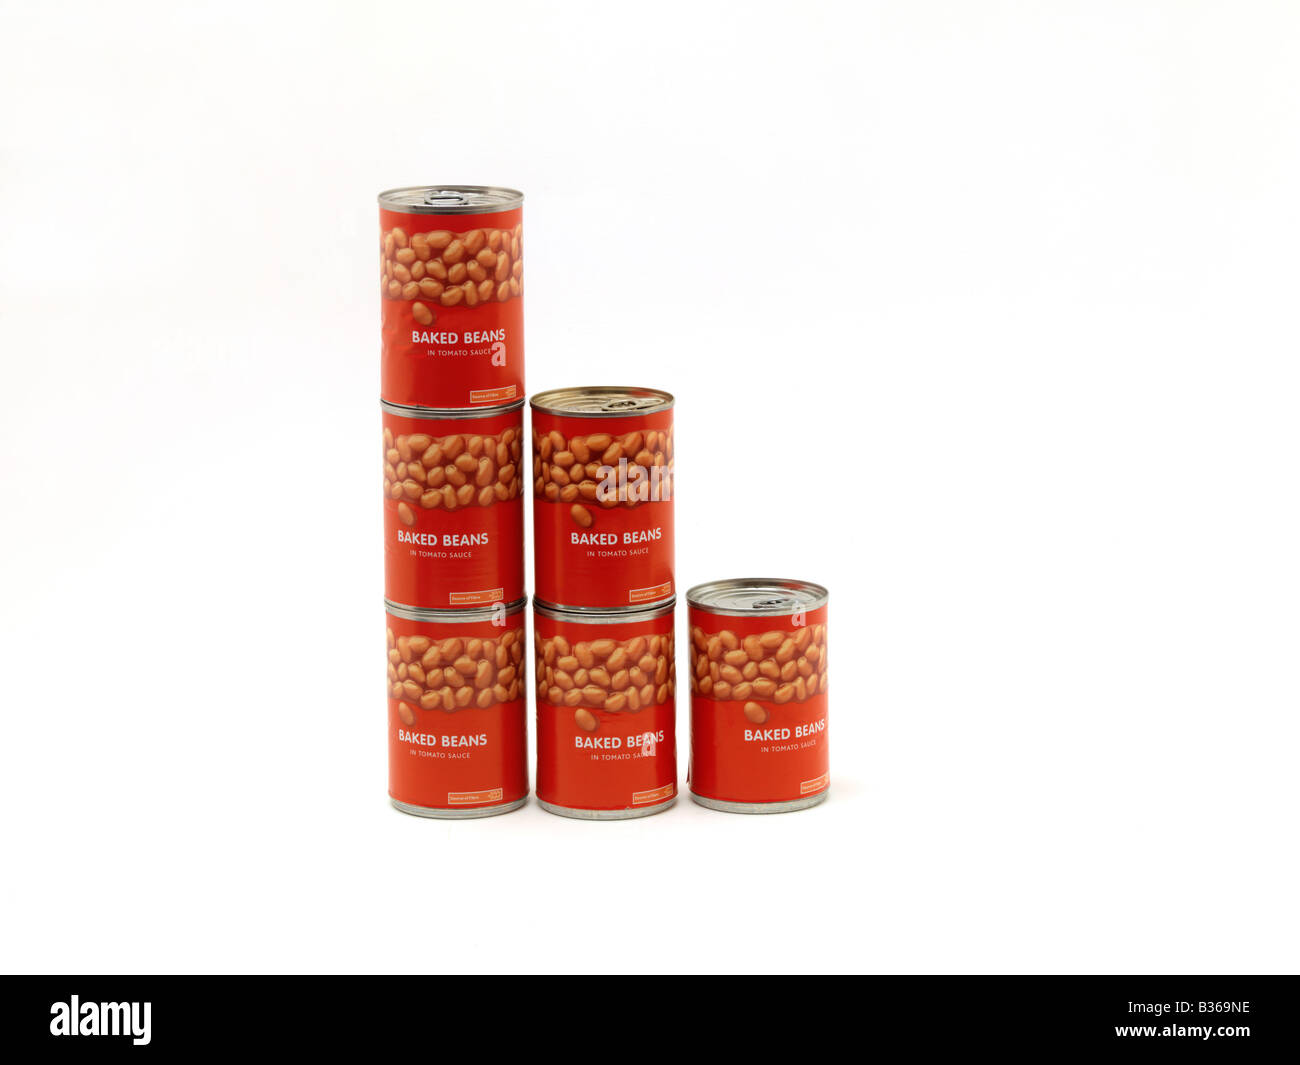 Tins of Baked Beans - Stock Image